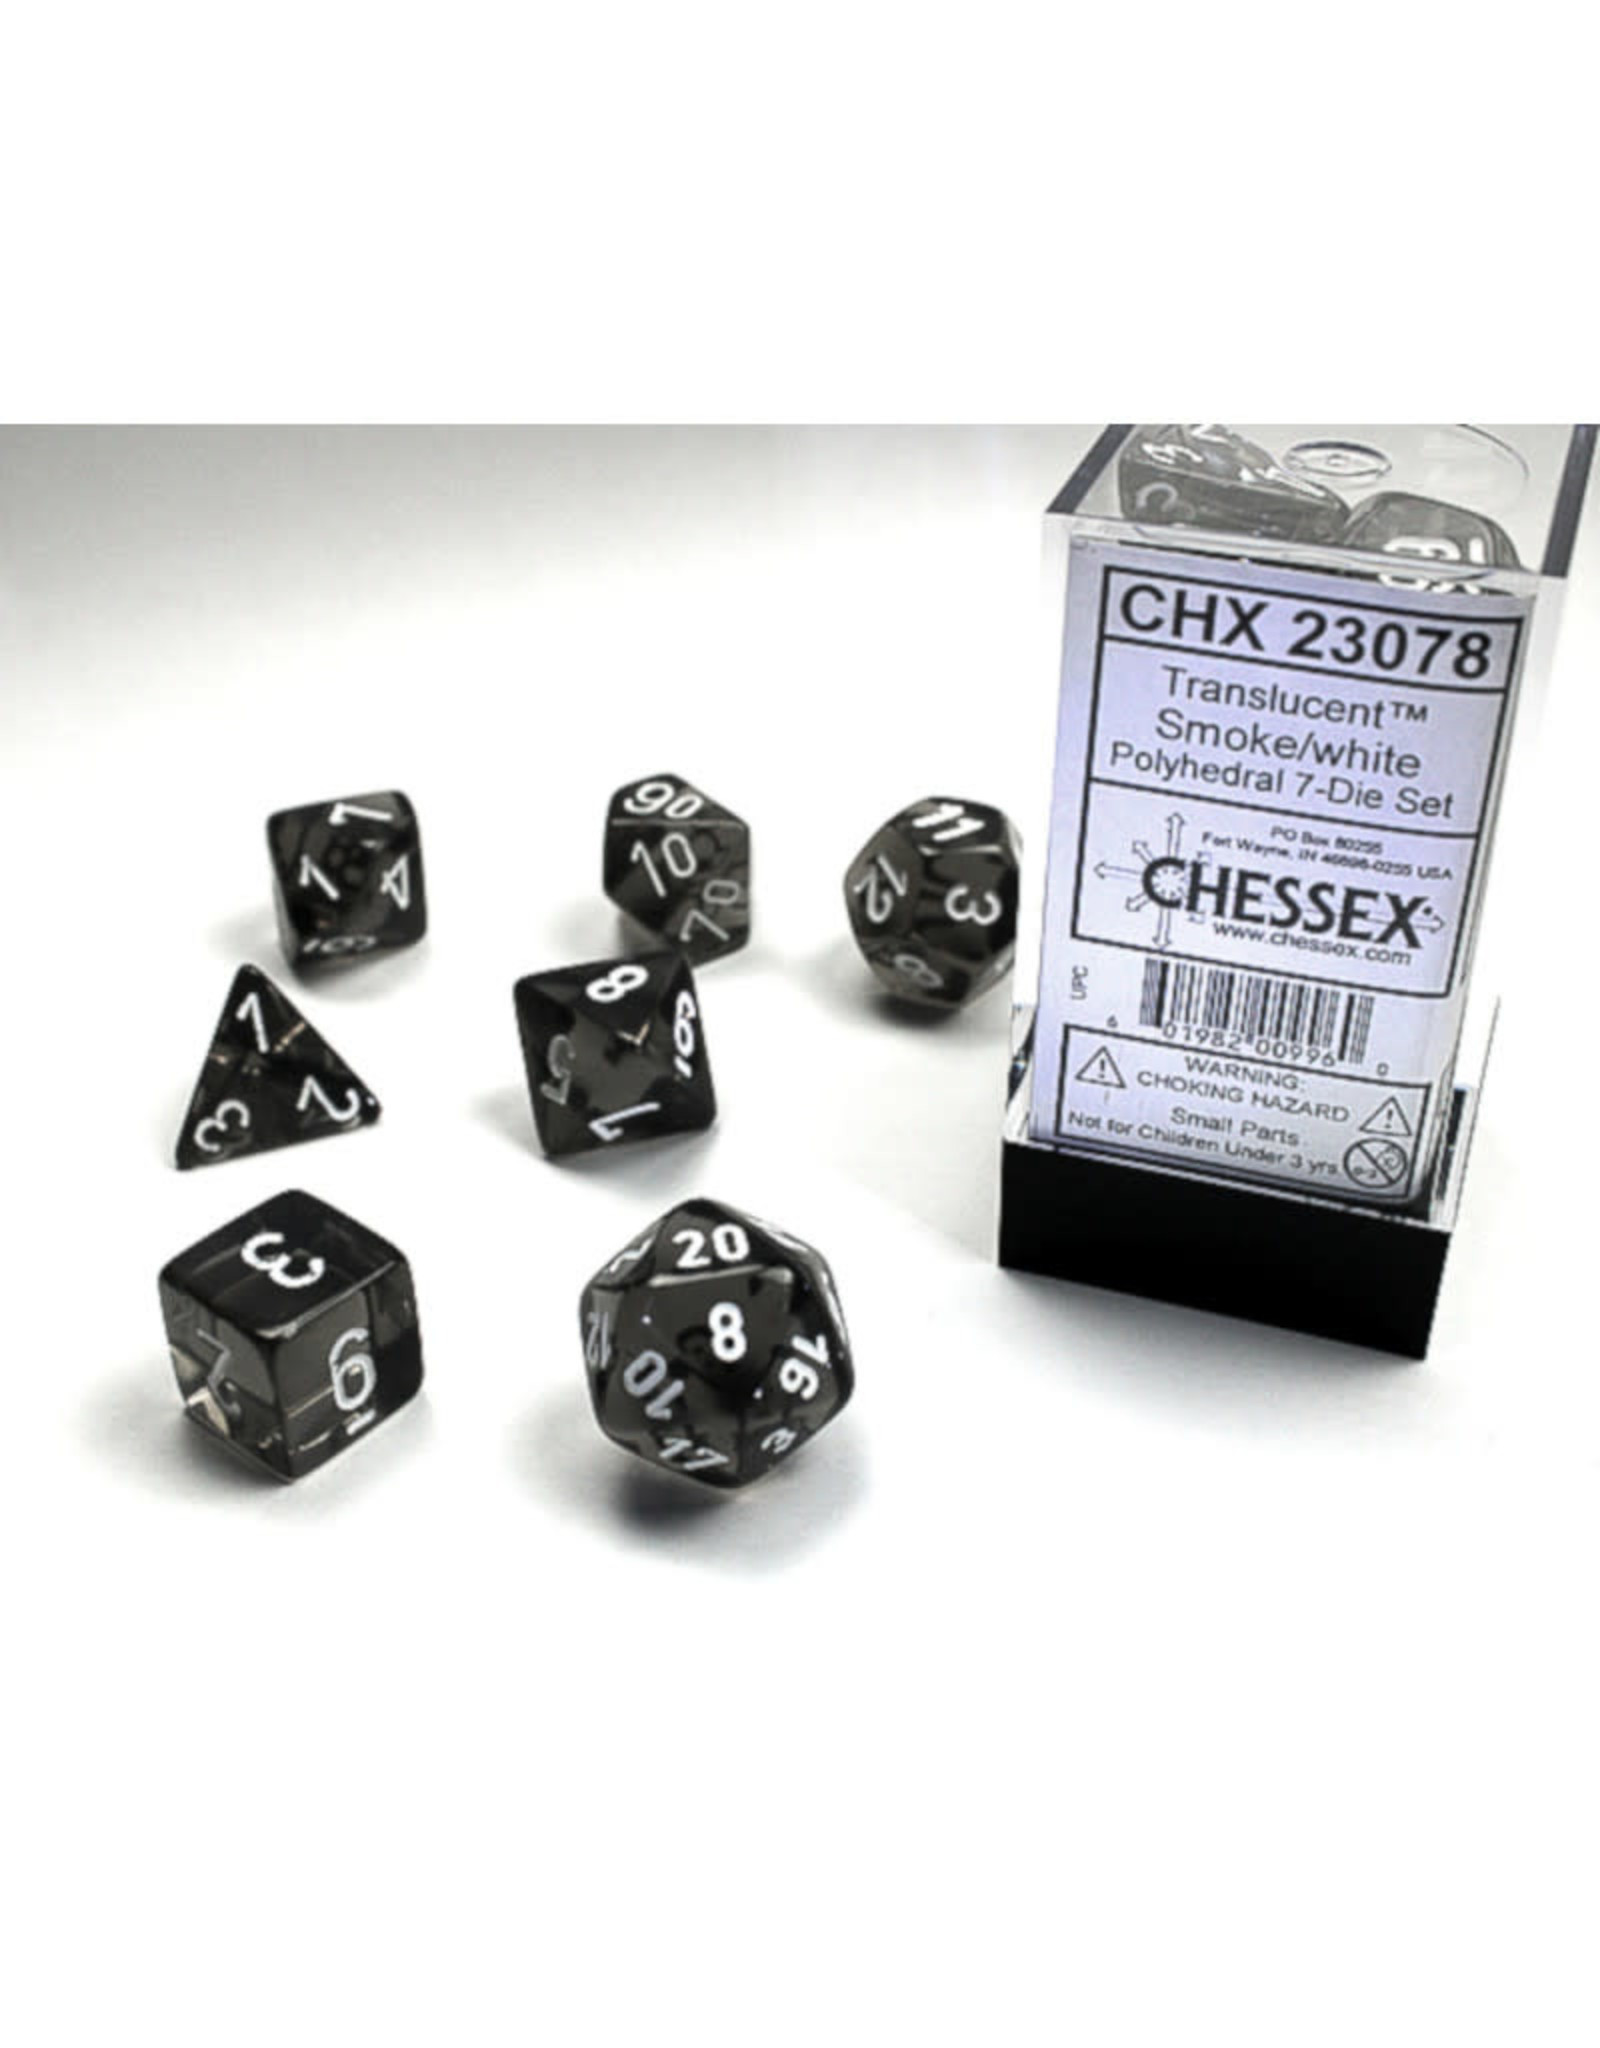 Chessex Polyhedral Dice Set: Translucent Smoke/White (7)